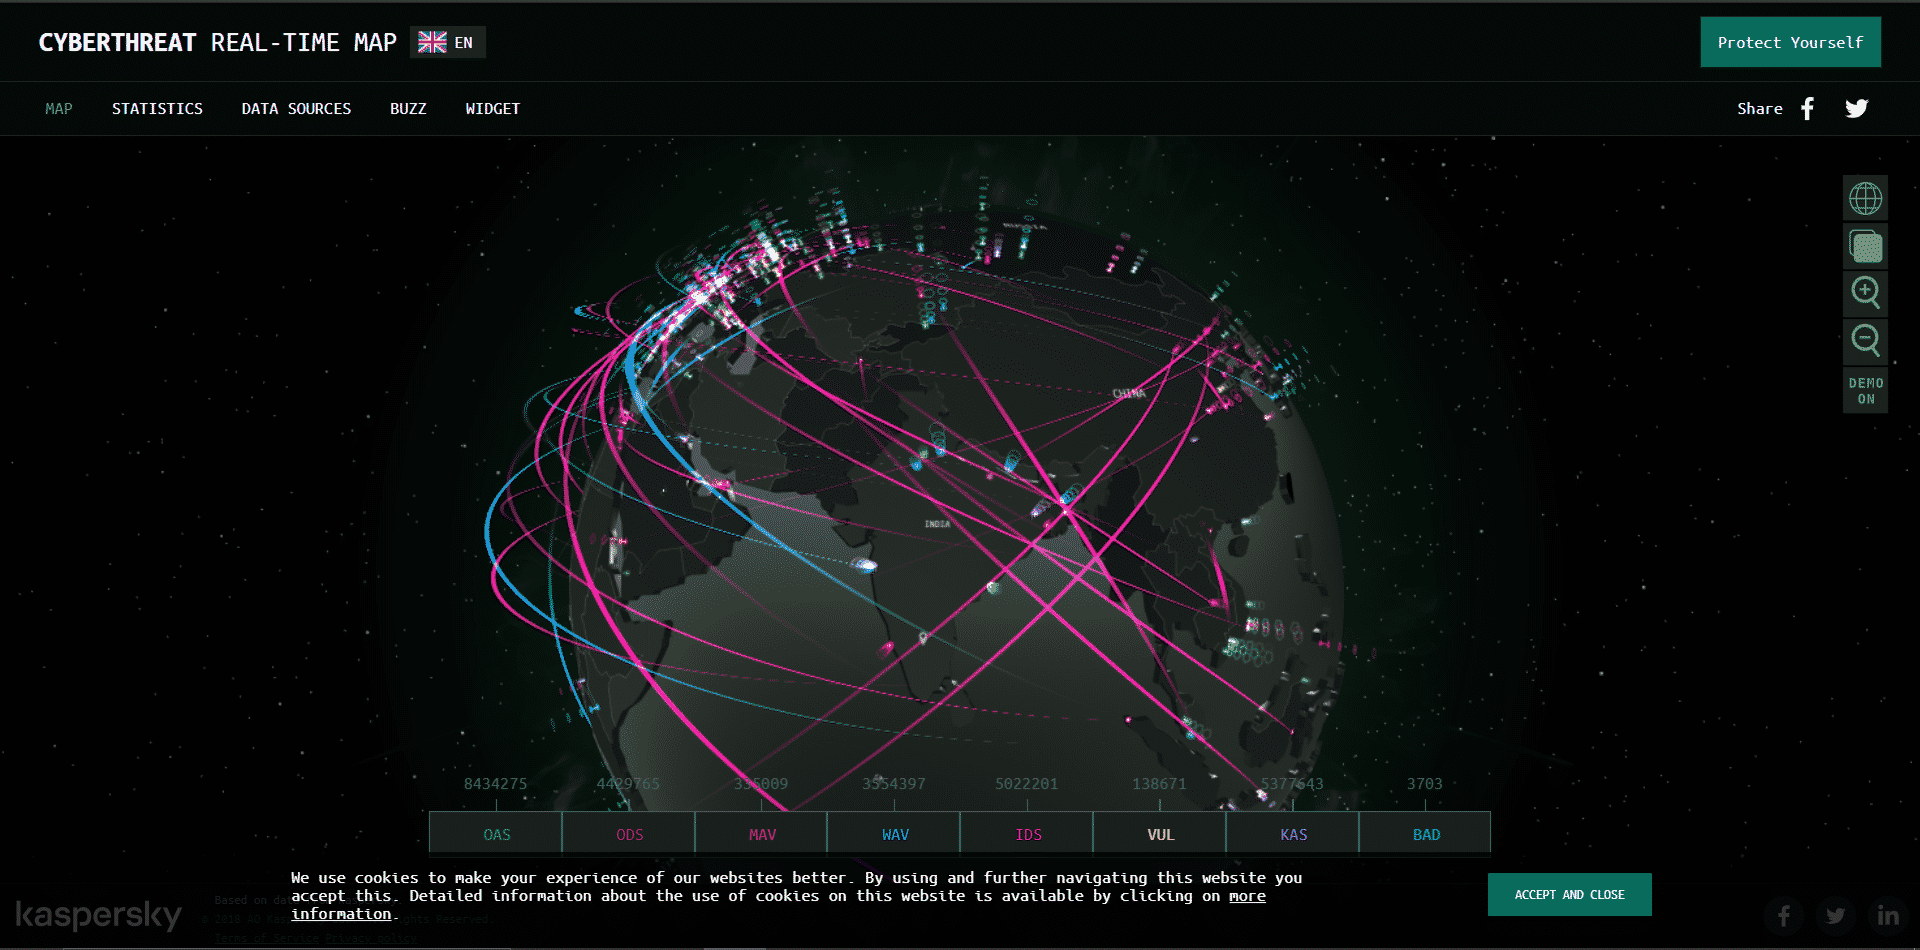 ddos real time map